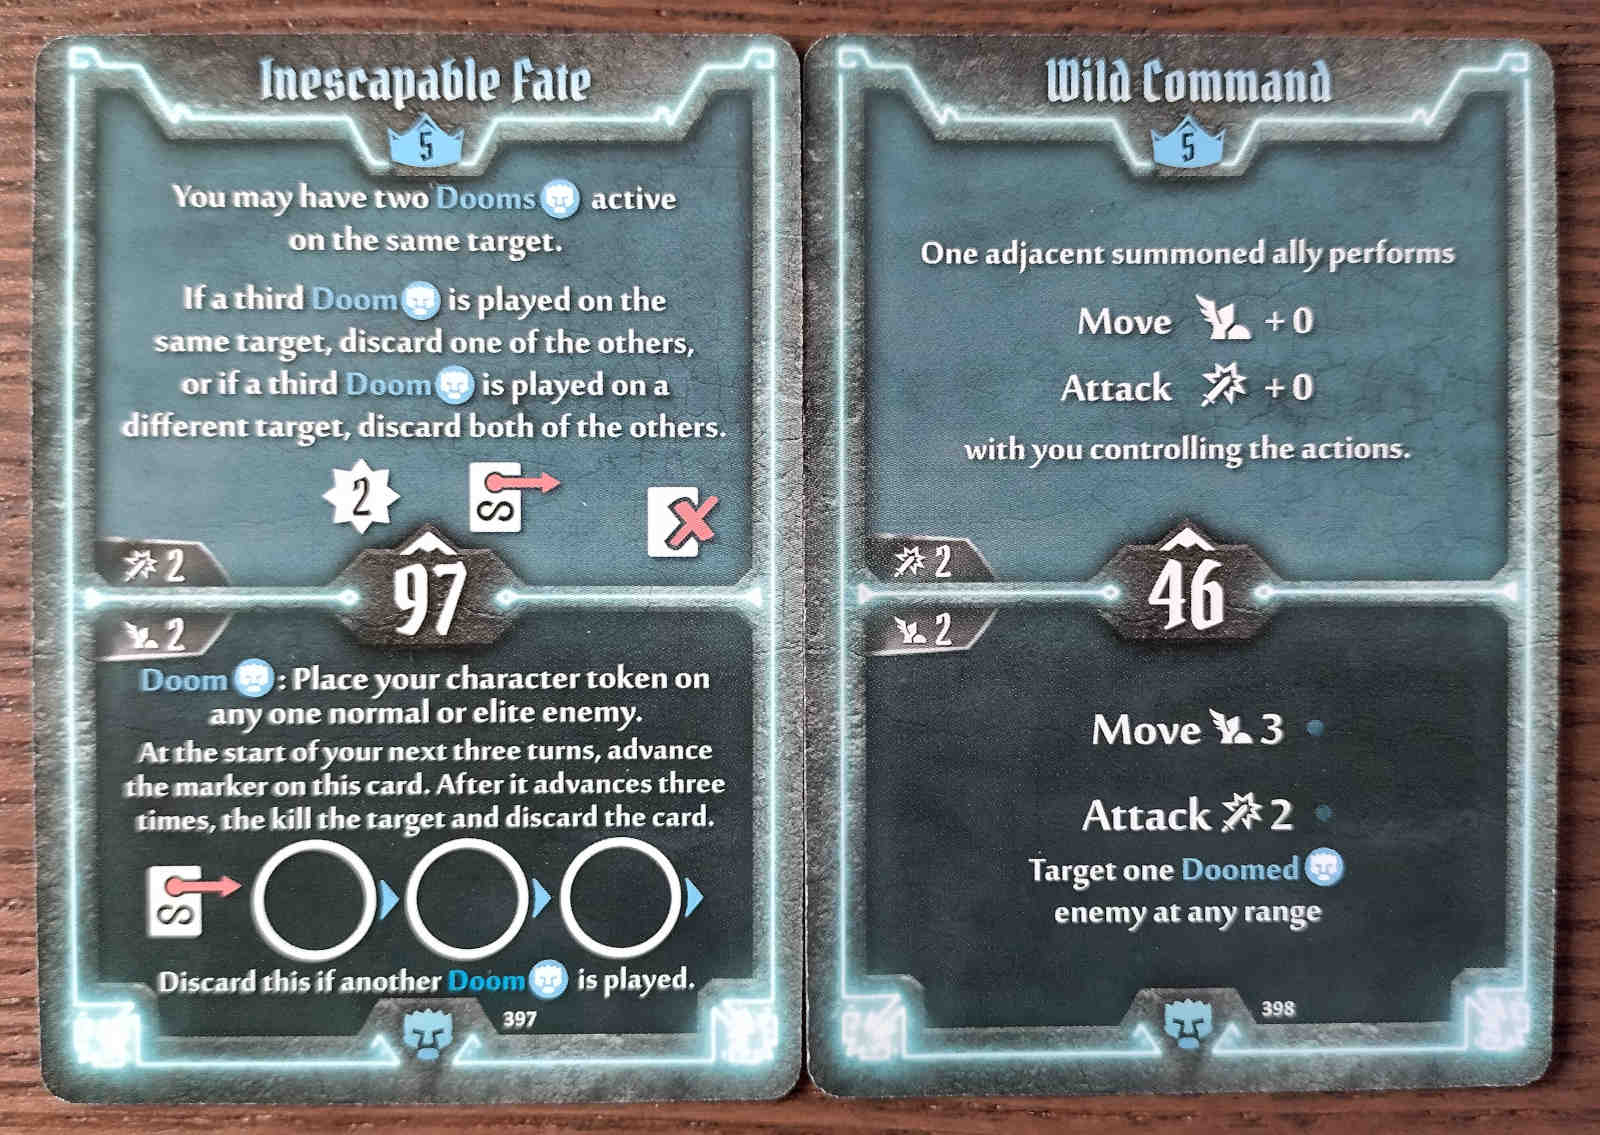 Level 5 Doomstalker cards - Inescapable Fate and Wild Command